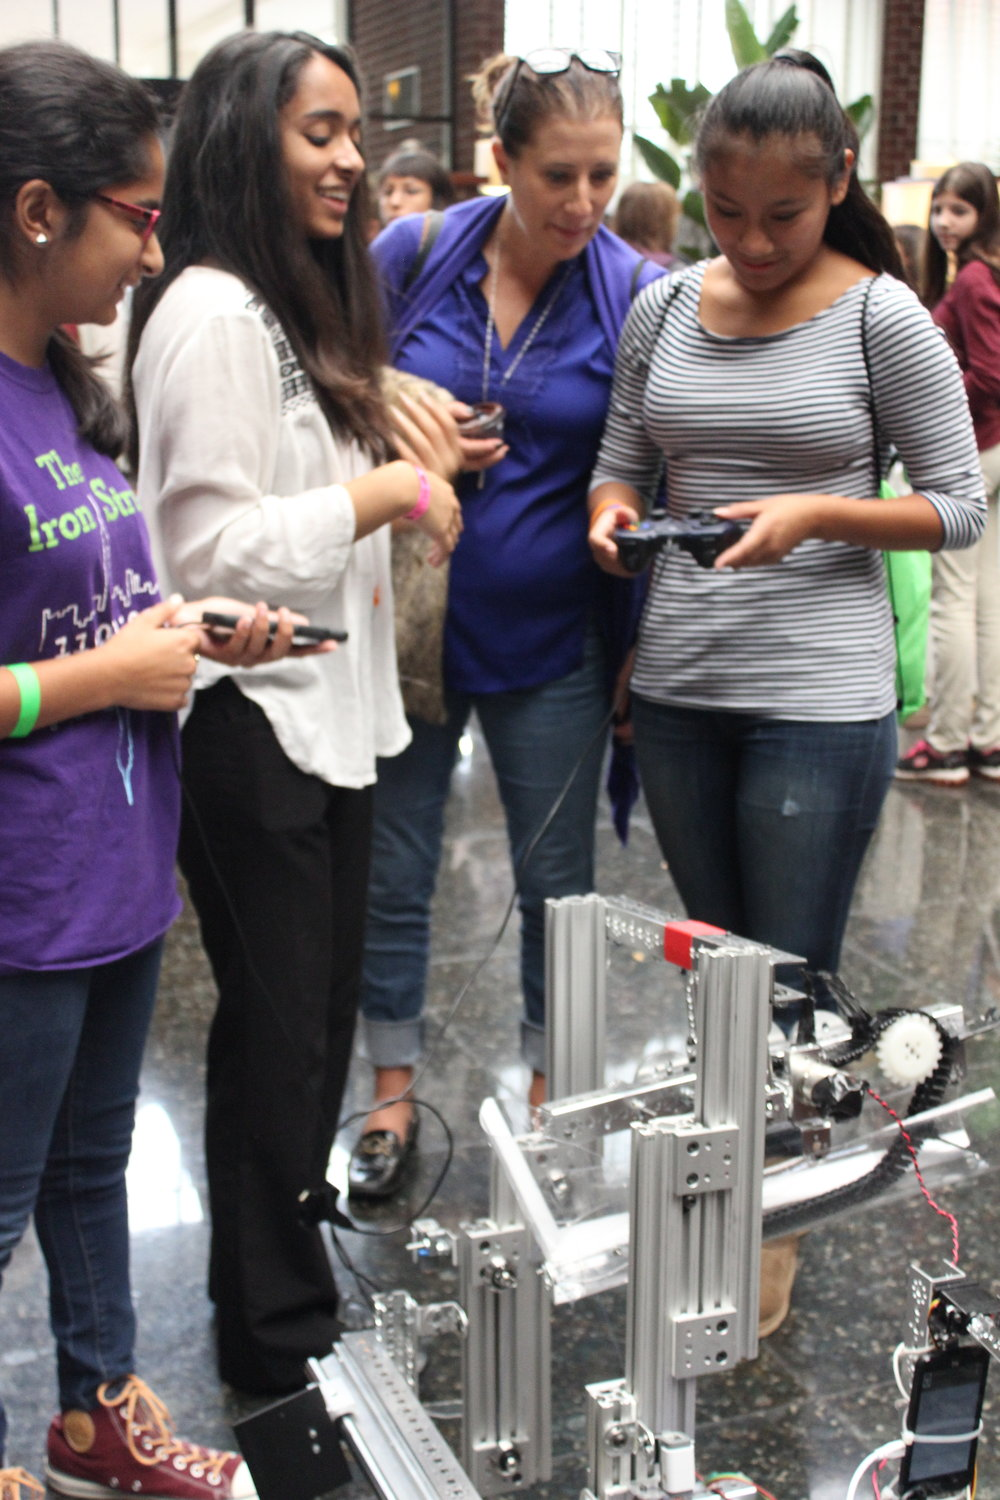 Sarah and Susan help girls drive the robot. Girls World Expo, October 2016.